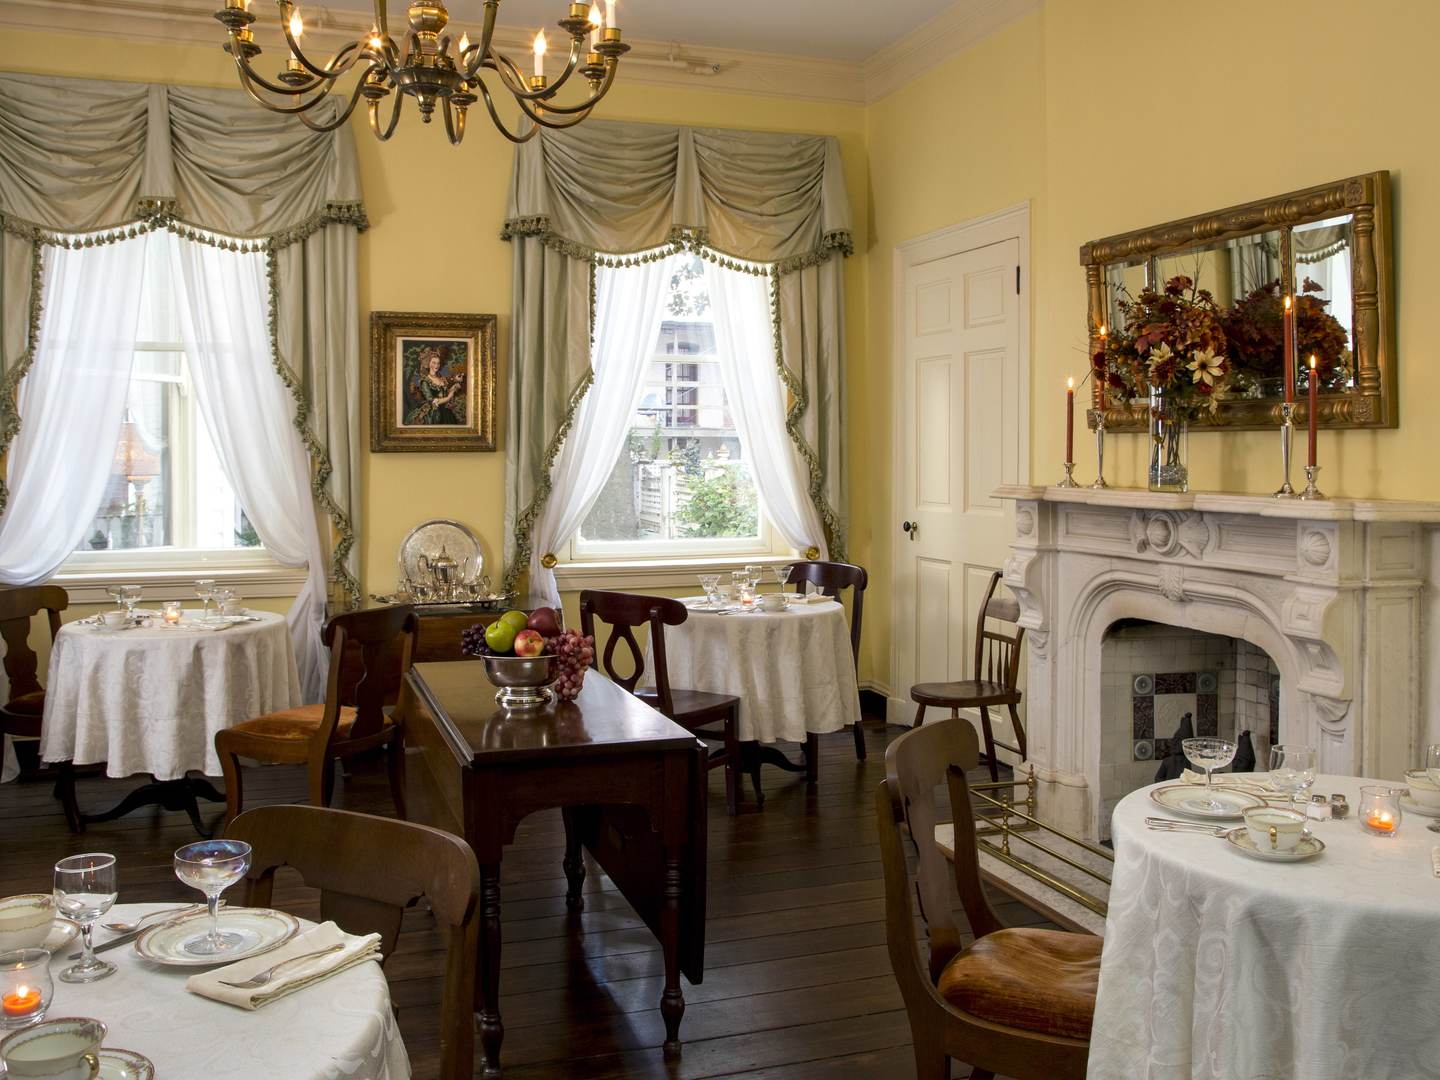 A room filled with furniture and a fireplace at Rachael's Dowry Bed and Breakfast.